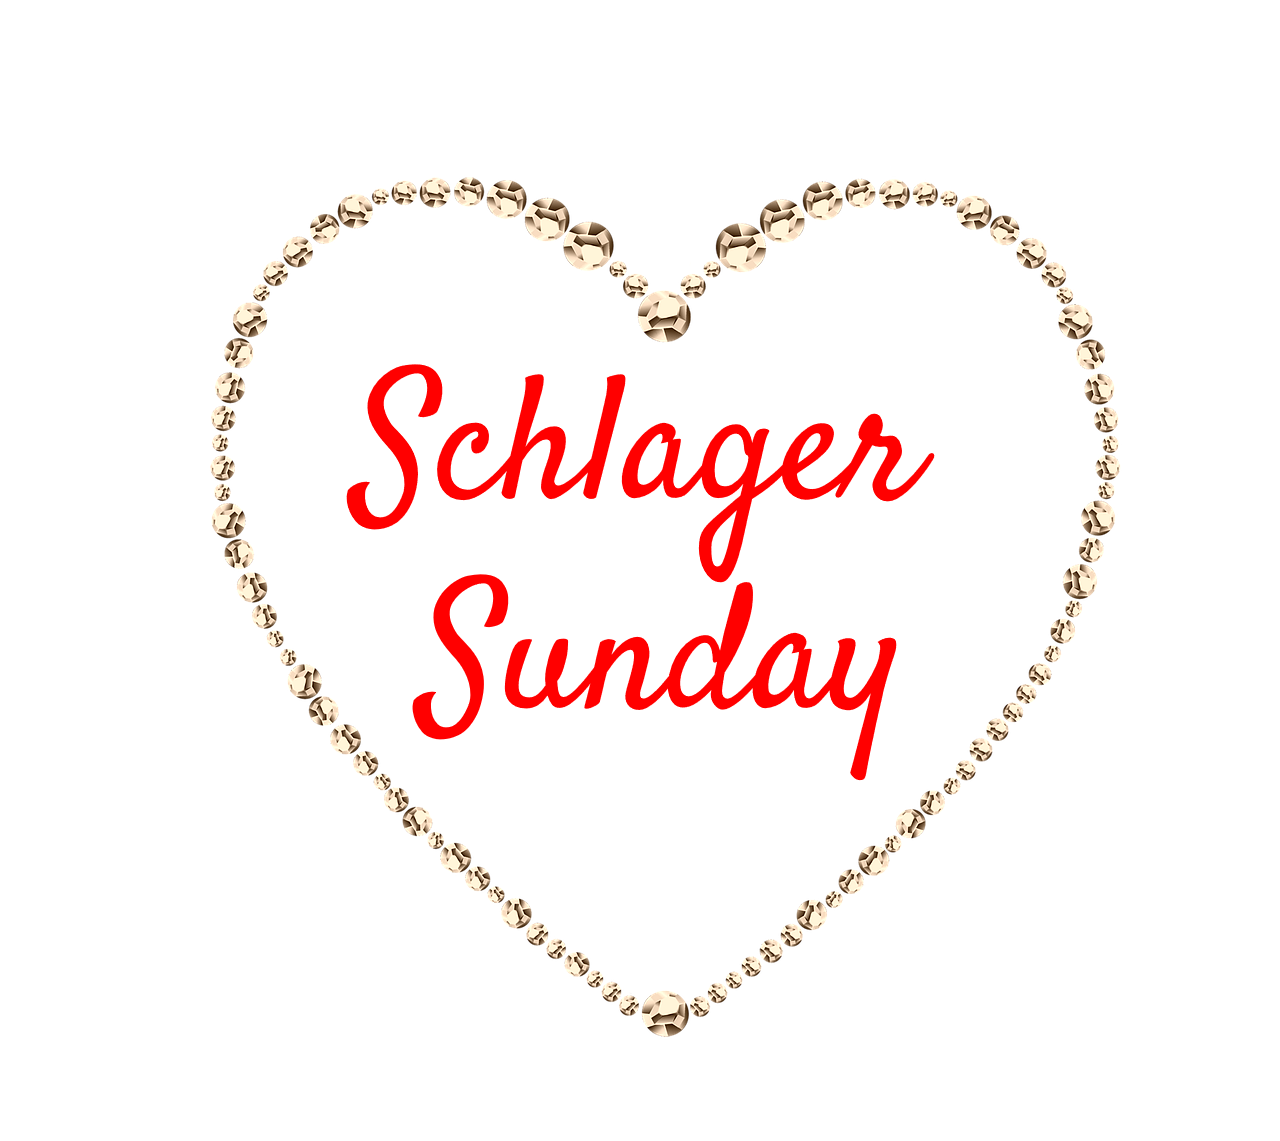 Schlager Sunday be kitschig blog Material Girl Madonna